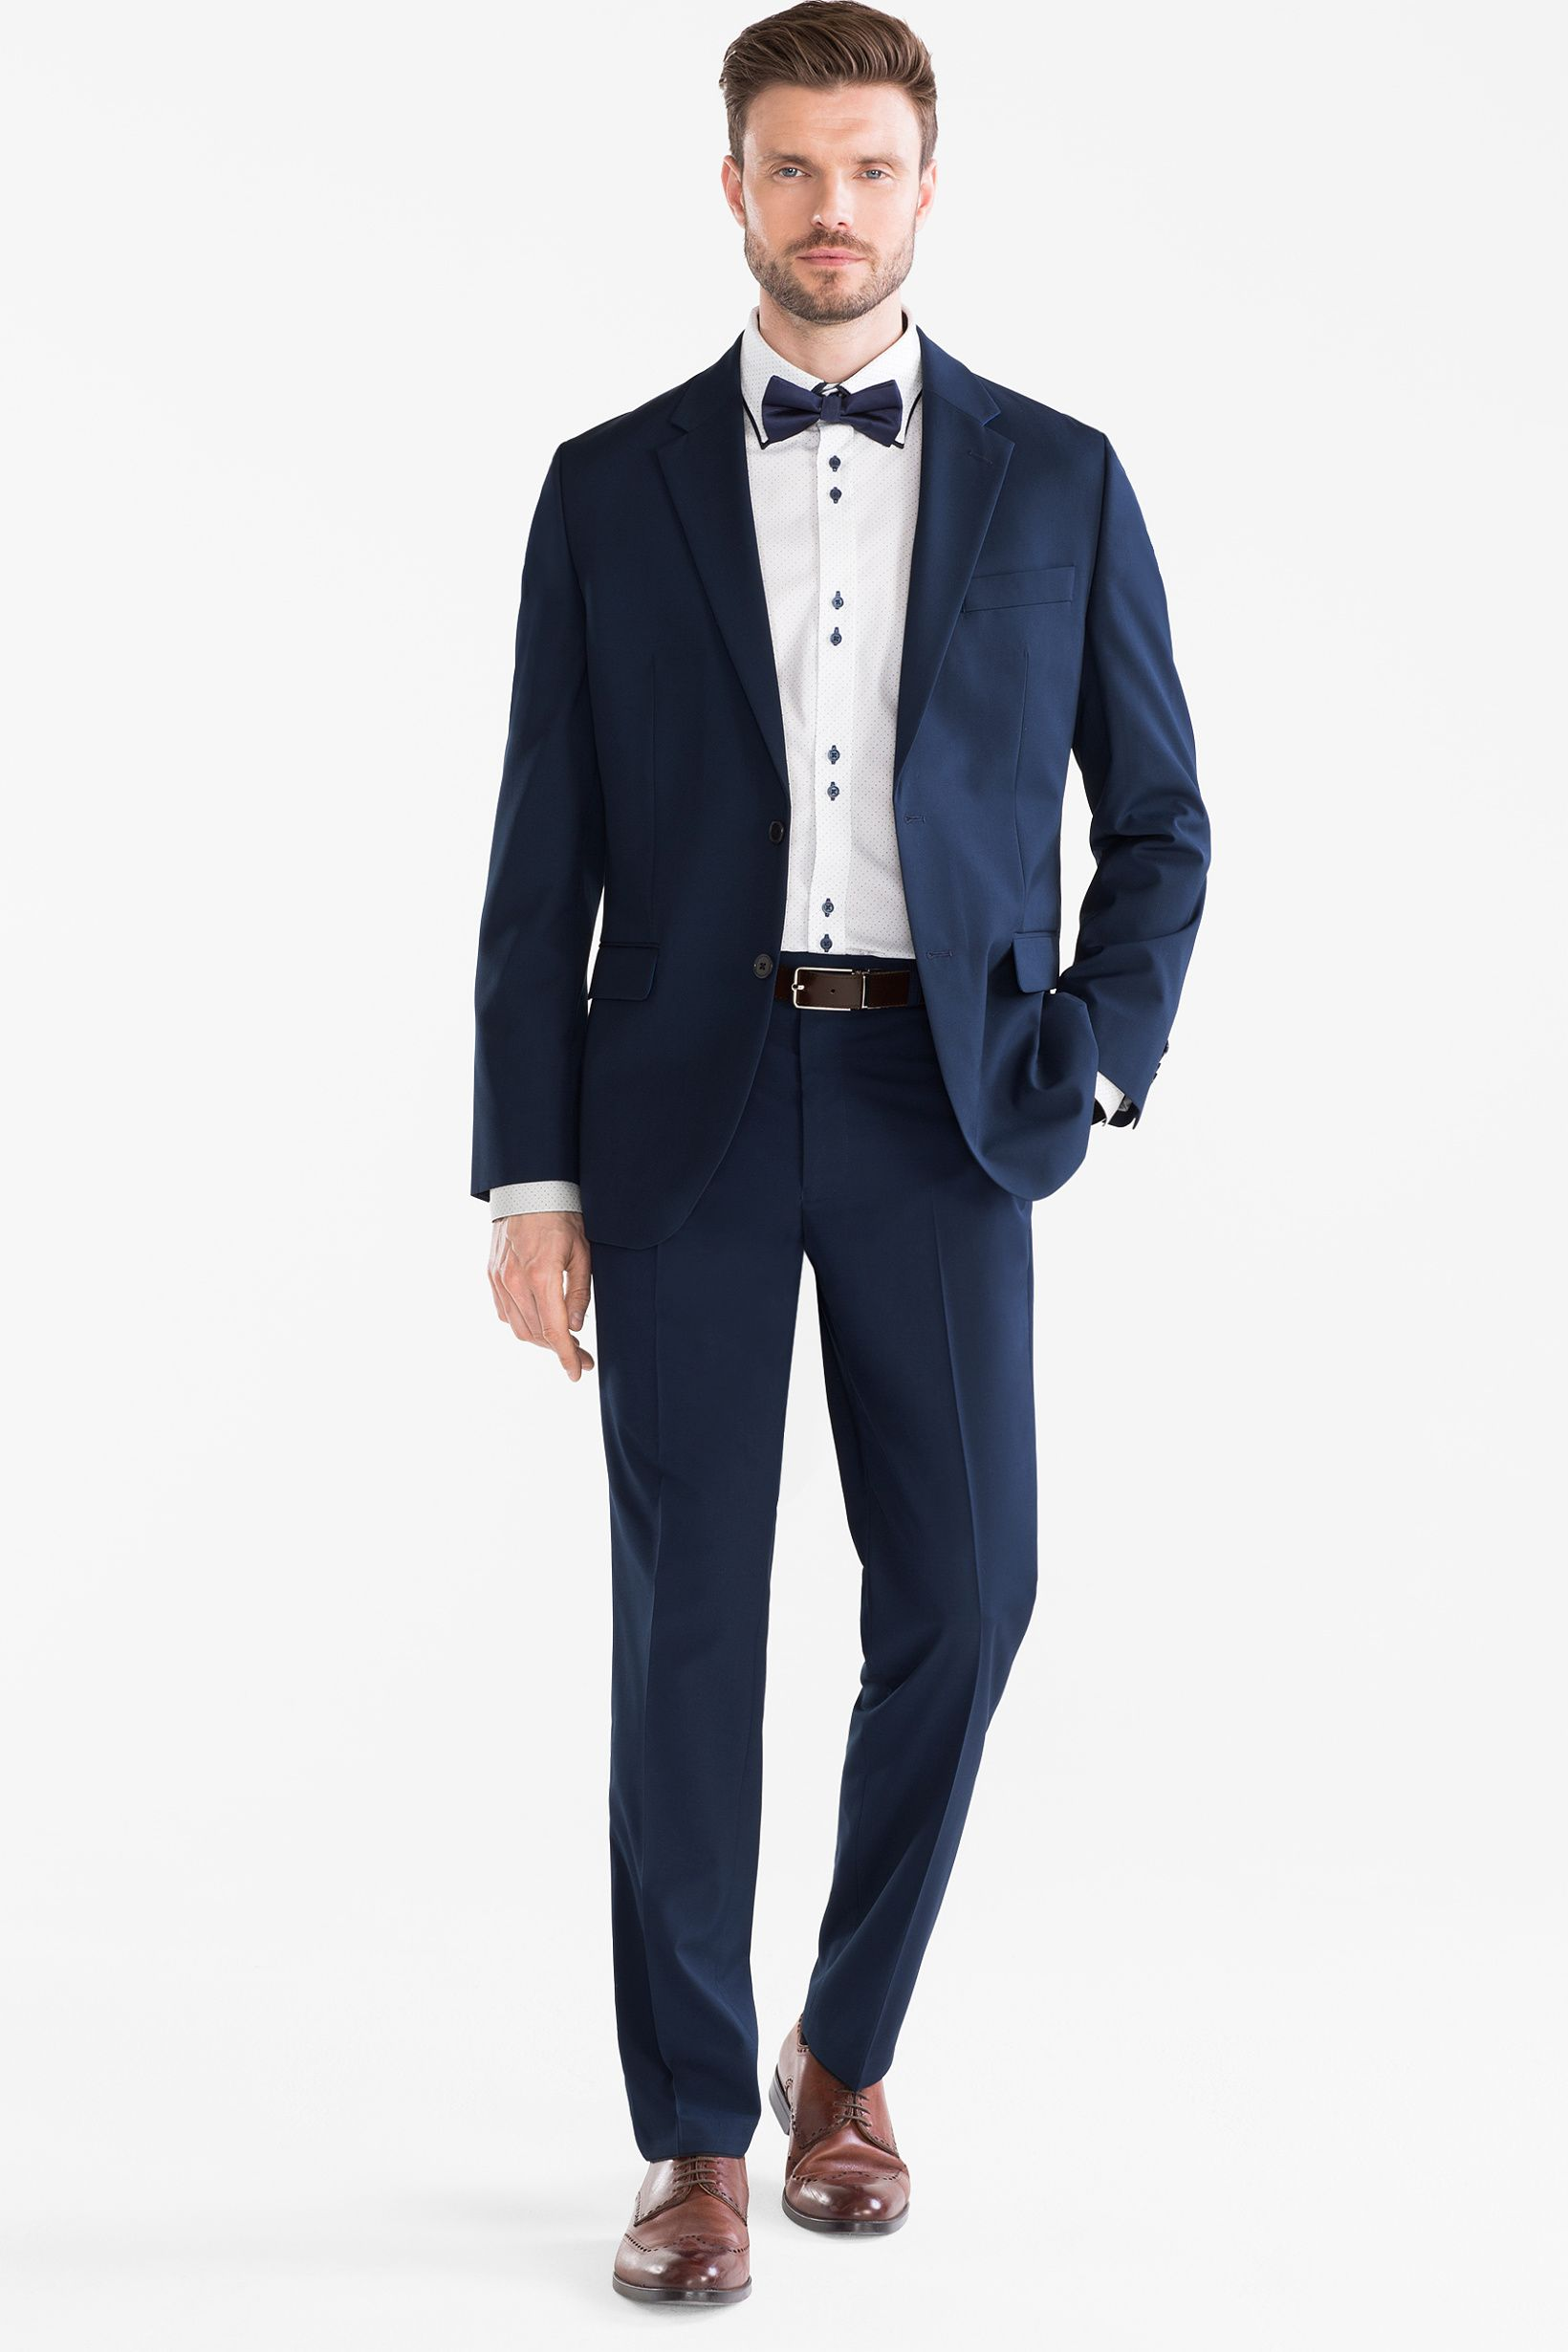 Marynarka Do Zestawiania Tailored Fit C A Suit And Tie Pantsuit Fitness